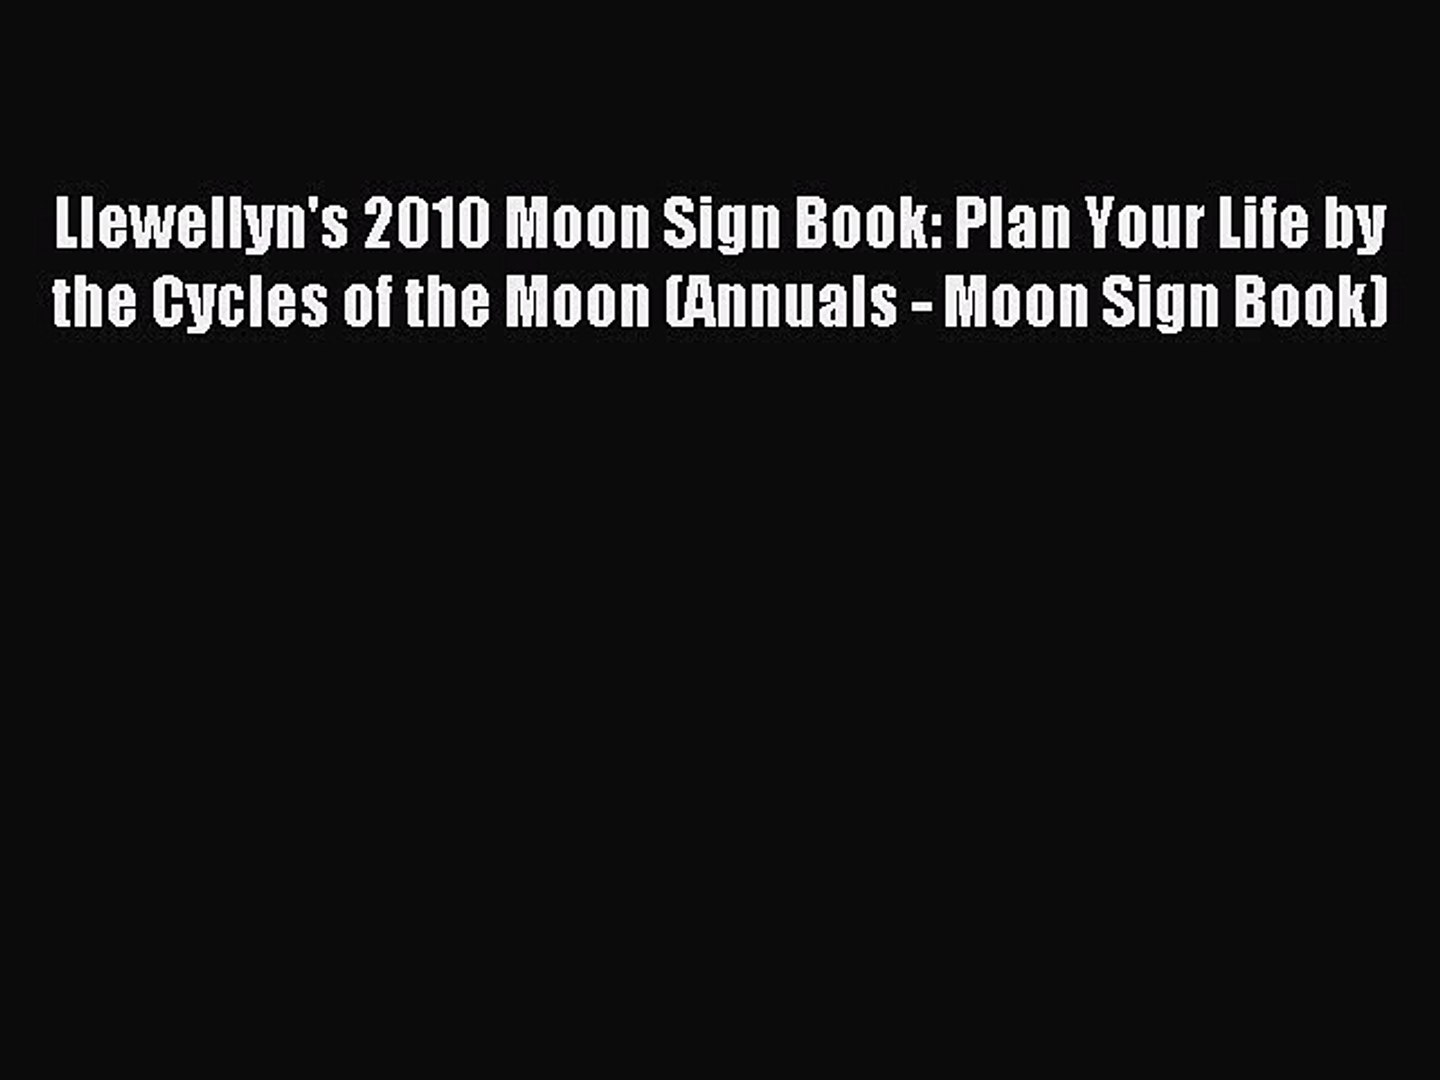 Read Llewellyn's 2010 Moon Sign Book: Plan Your Life by the Cycles of the Moon (Annuals - Moon